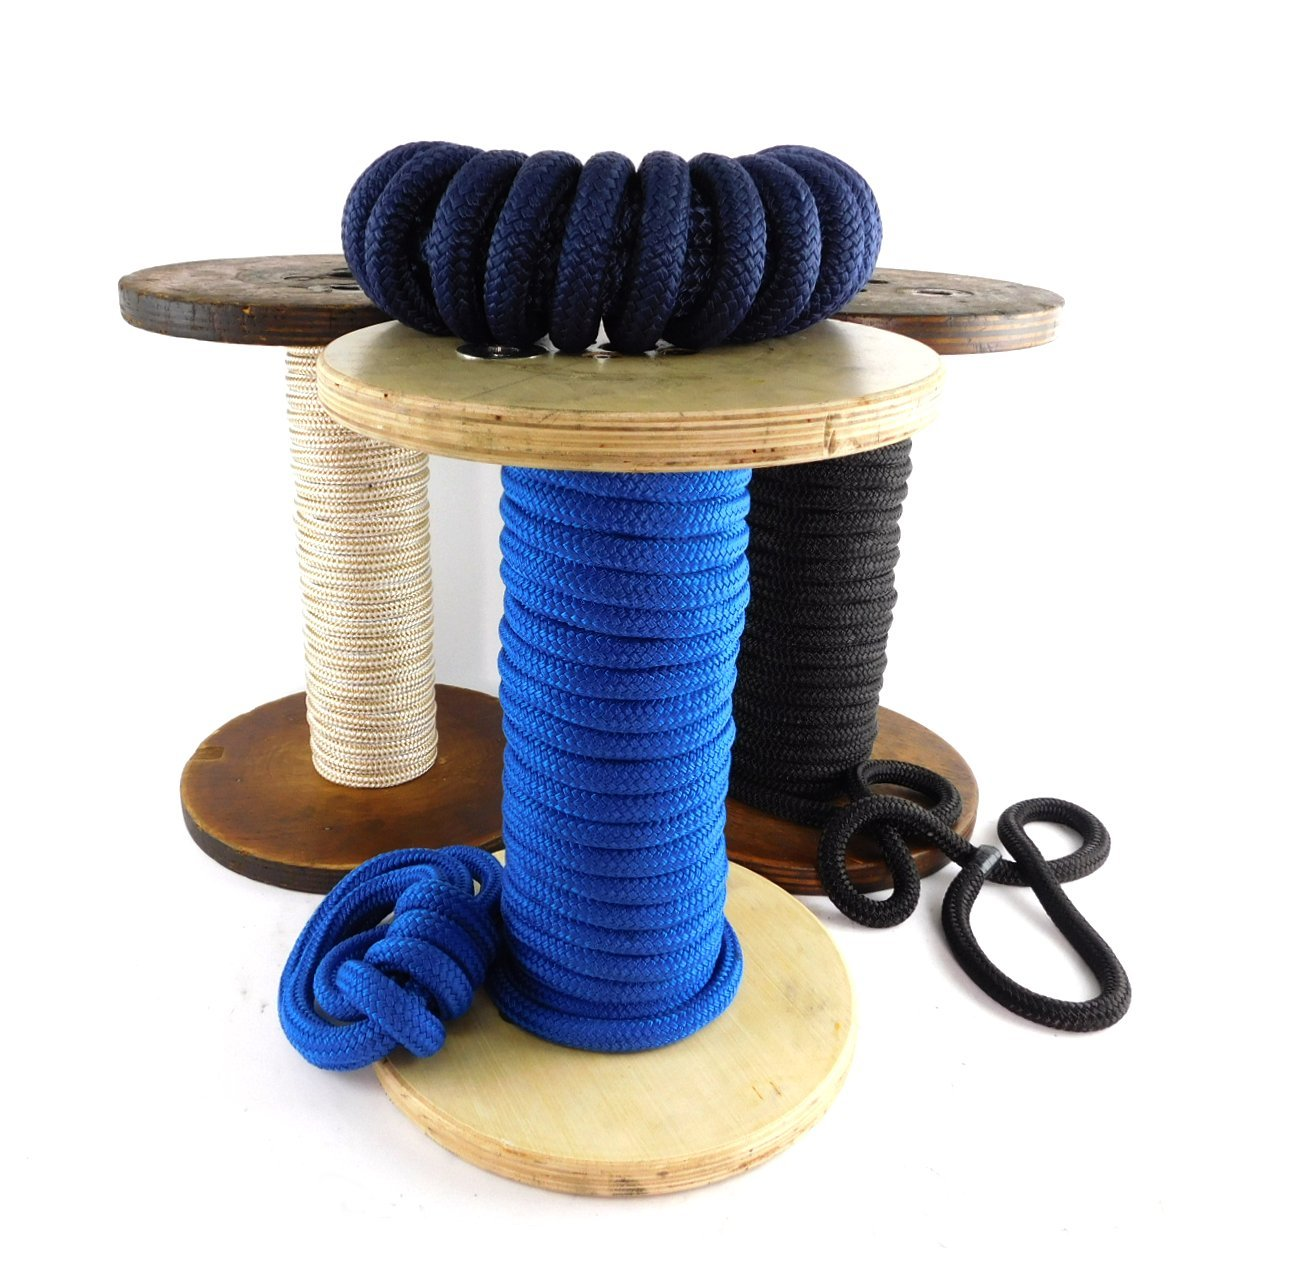 Ravenox by FMS Double Braid Nylon Rope - (Blue)(5/8'' x 25 FT) Strong Braided Nylon Cord Yachts, Dock Lines, Anchor Rope, Mooring Lines & General Purpose | Made in The USA